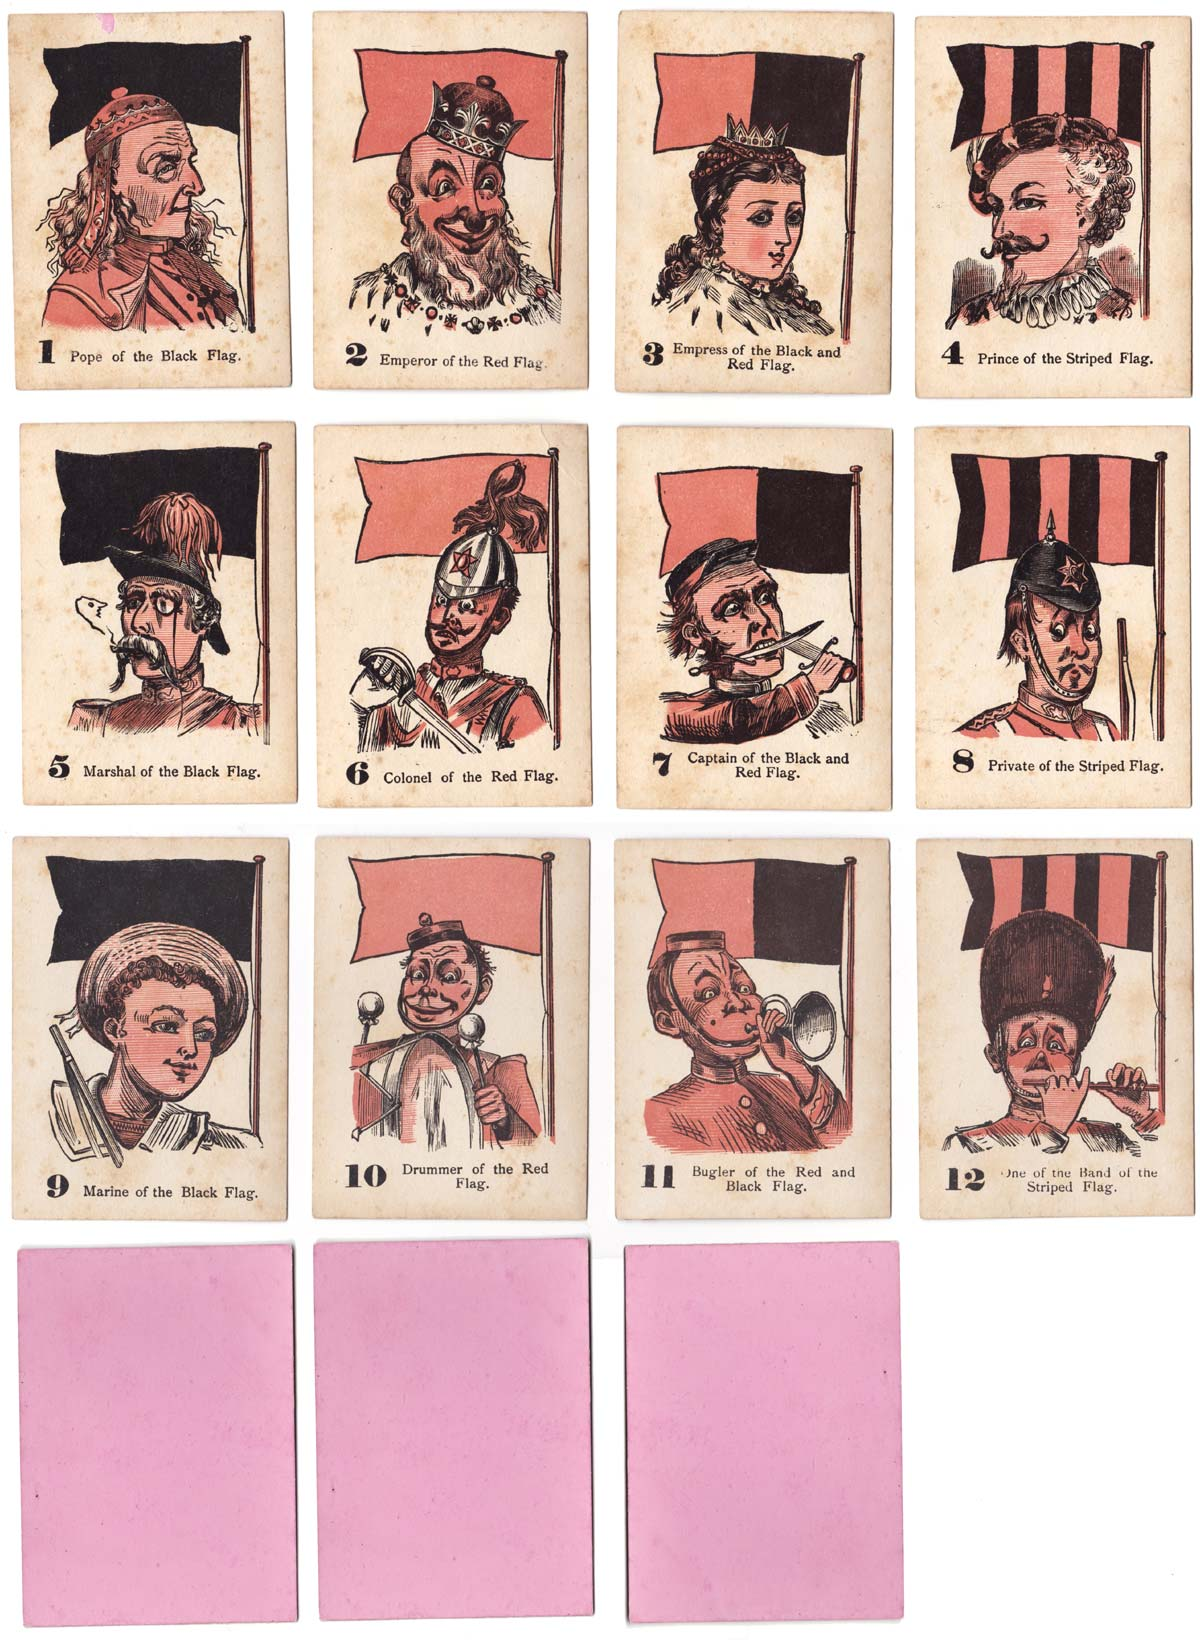 The Game of Four Flags published by Multum in Parvo, from 1896